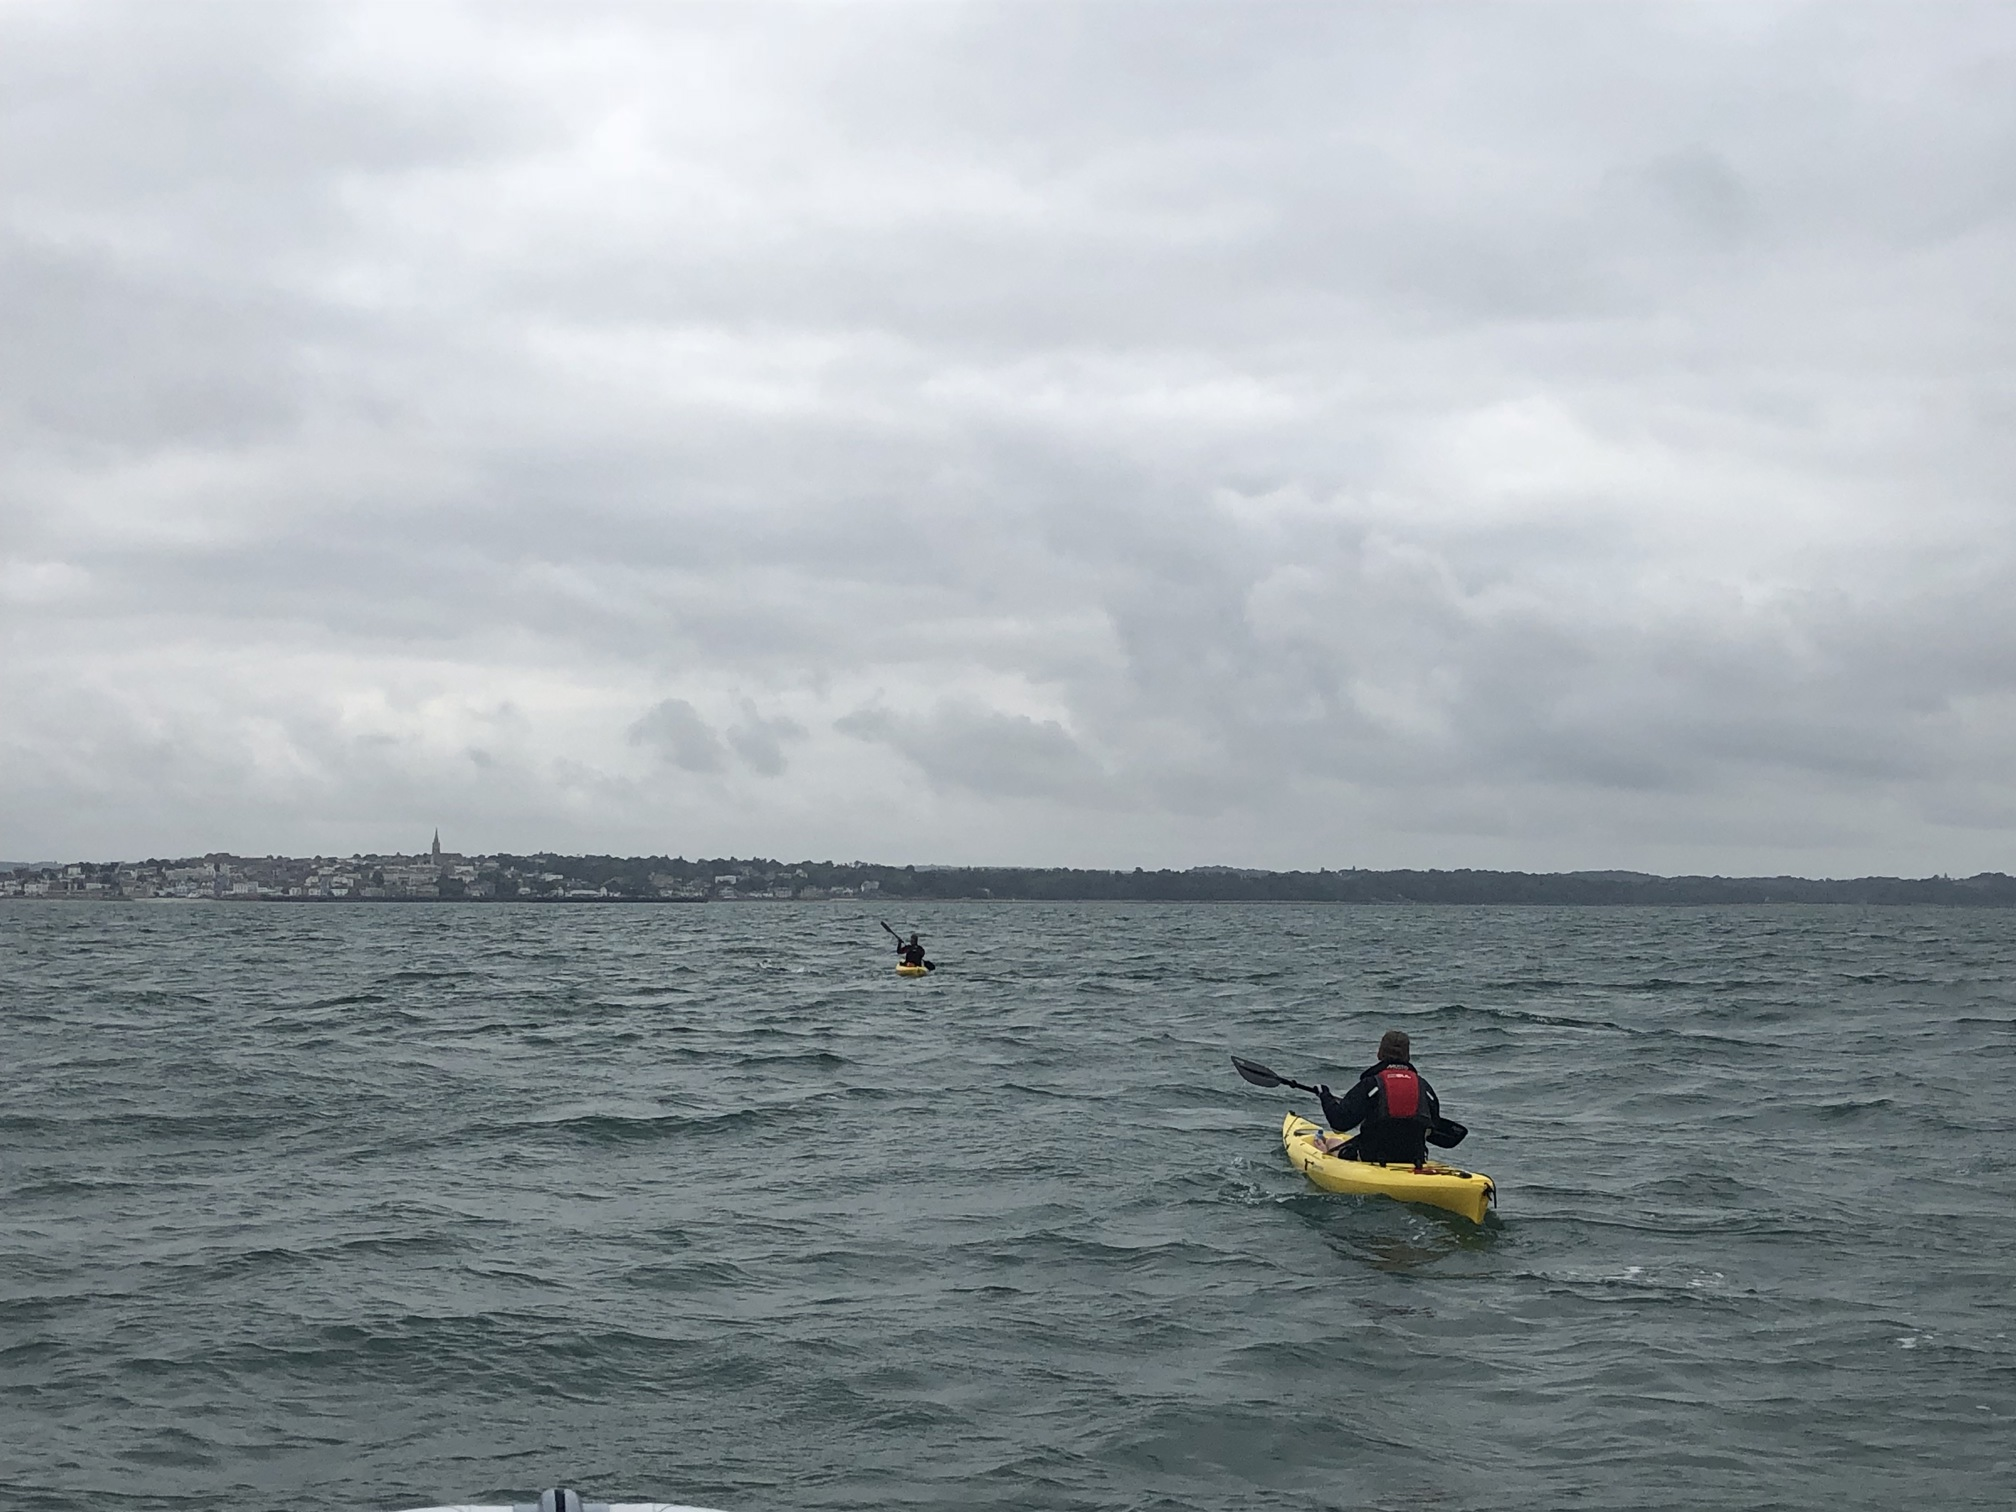 Swimmer with their kayaker behind and the Isle of Wight in the distance